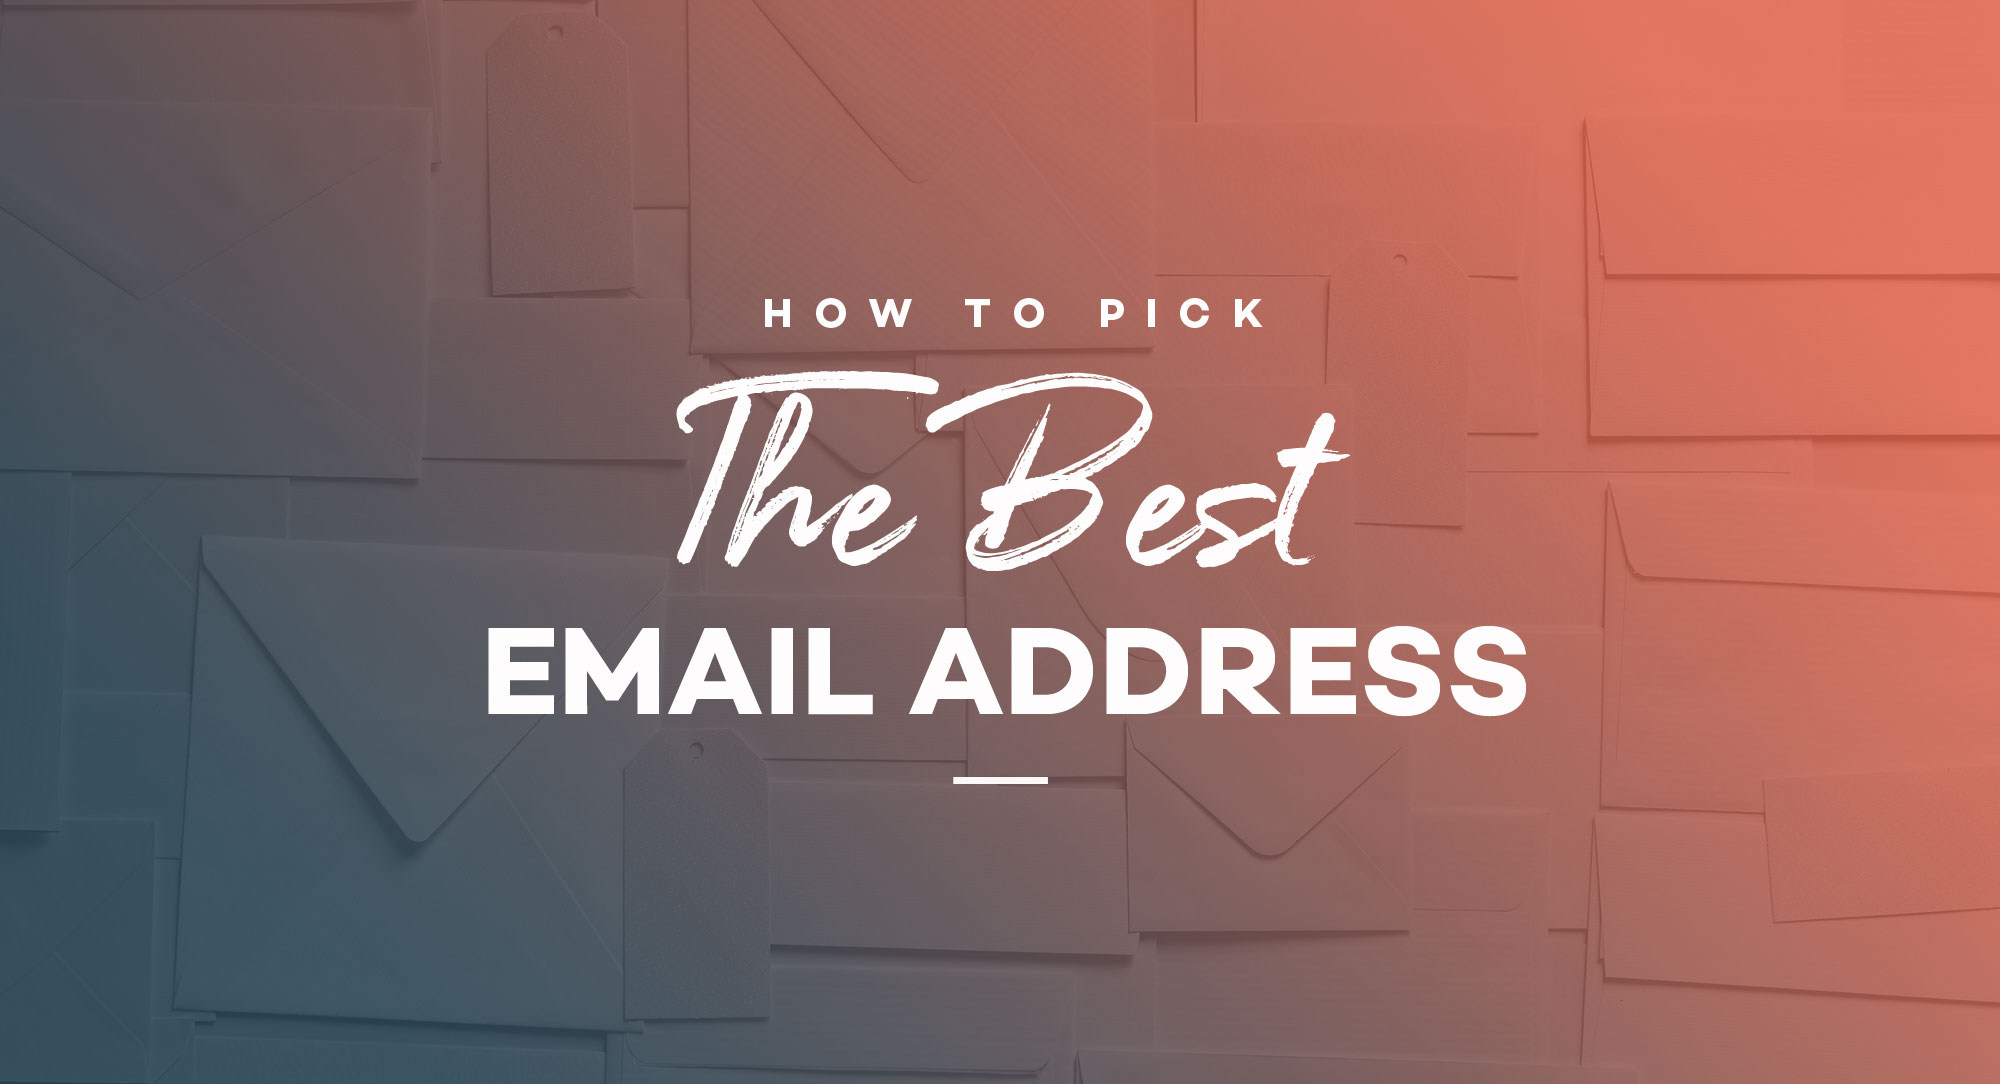 How to pick the best email address